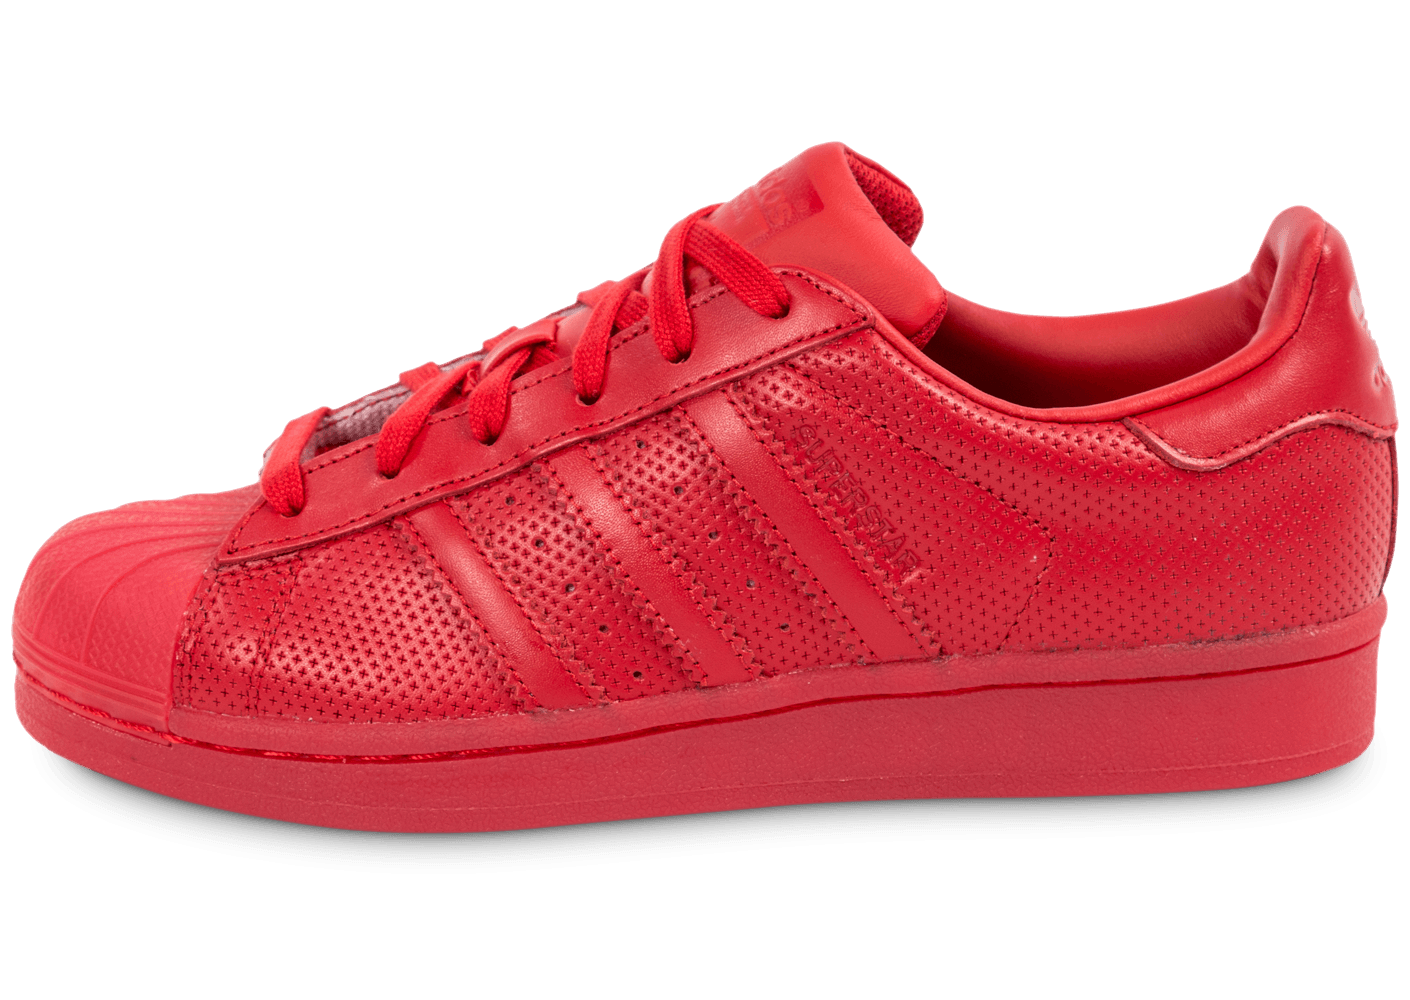 adidas superstar toute rouge femme